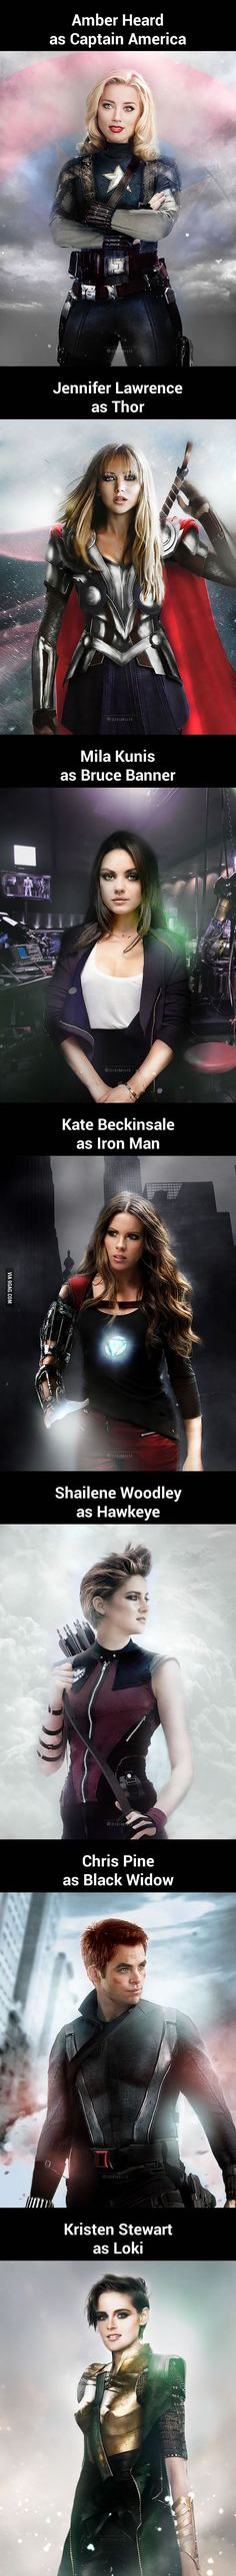 "Someone Swapped The Genders Of ""The Avengers"" And It's Perfect http://www.ezcosplay.com/movie-tv-costumes/movie-costume-hot-sales.html"